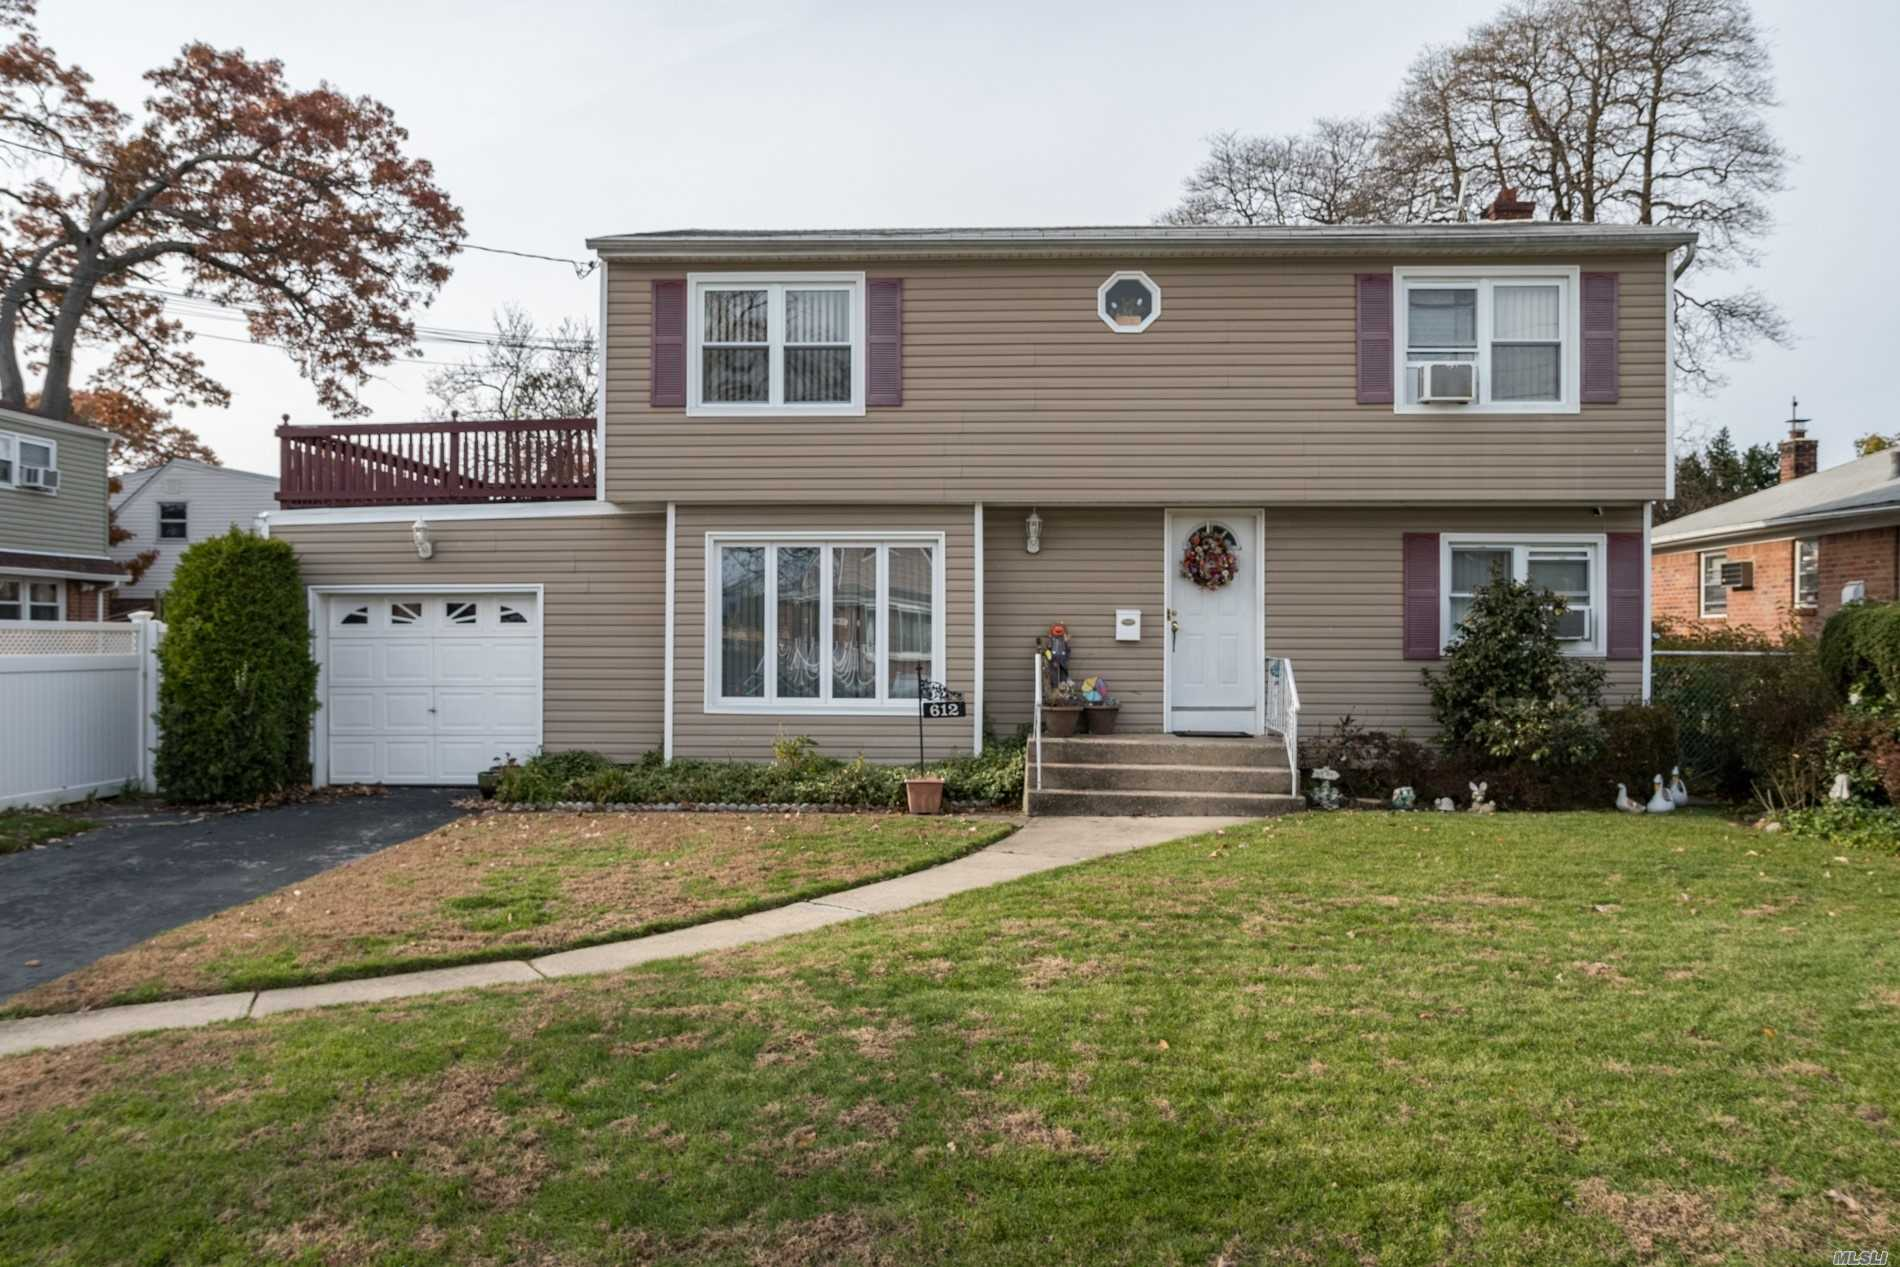 4 Bedroom 2.5 Bath Colonial Conveniently Located On A Culdesac In Elmont. Valley Stream Schools. Possible Mother/Daughter With Proper Permits. Great For A Large Family. Enclosed Yard And Private Driveway. 1 Car Garage And Finished Basement With Outside Entrance.